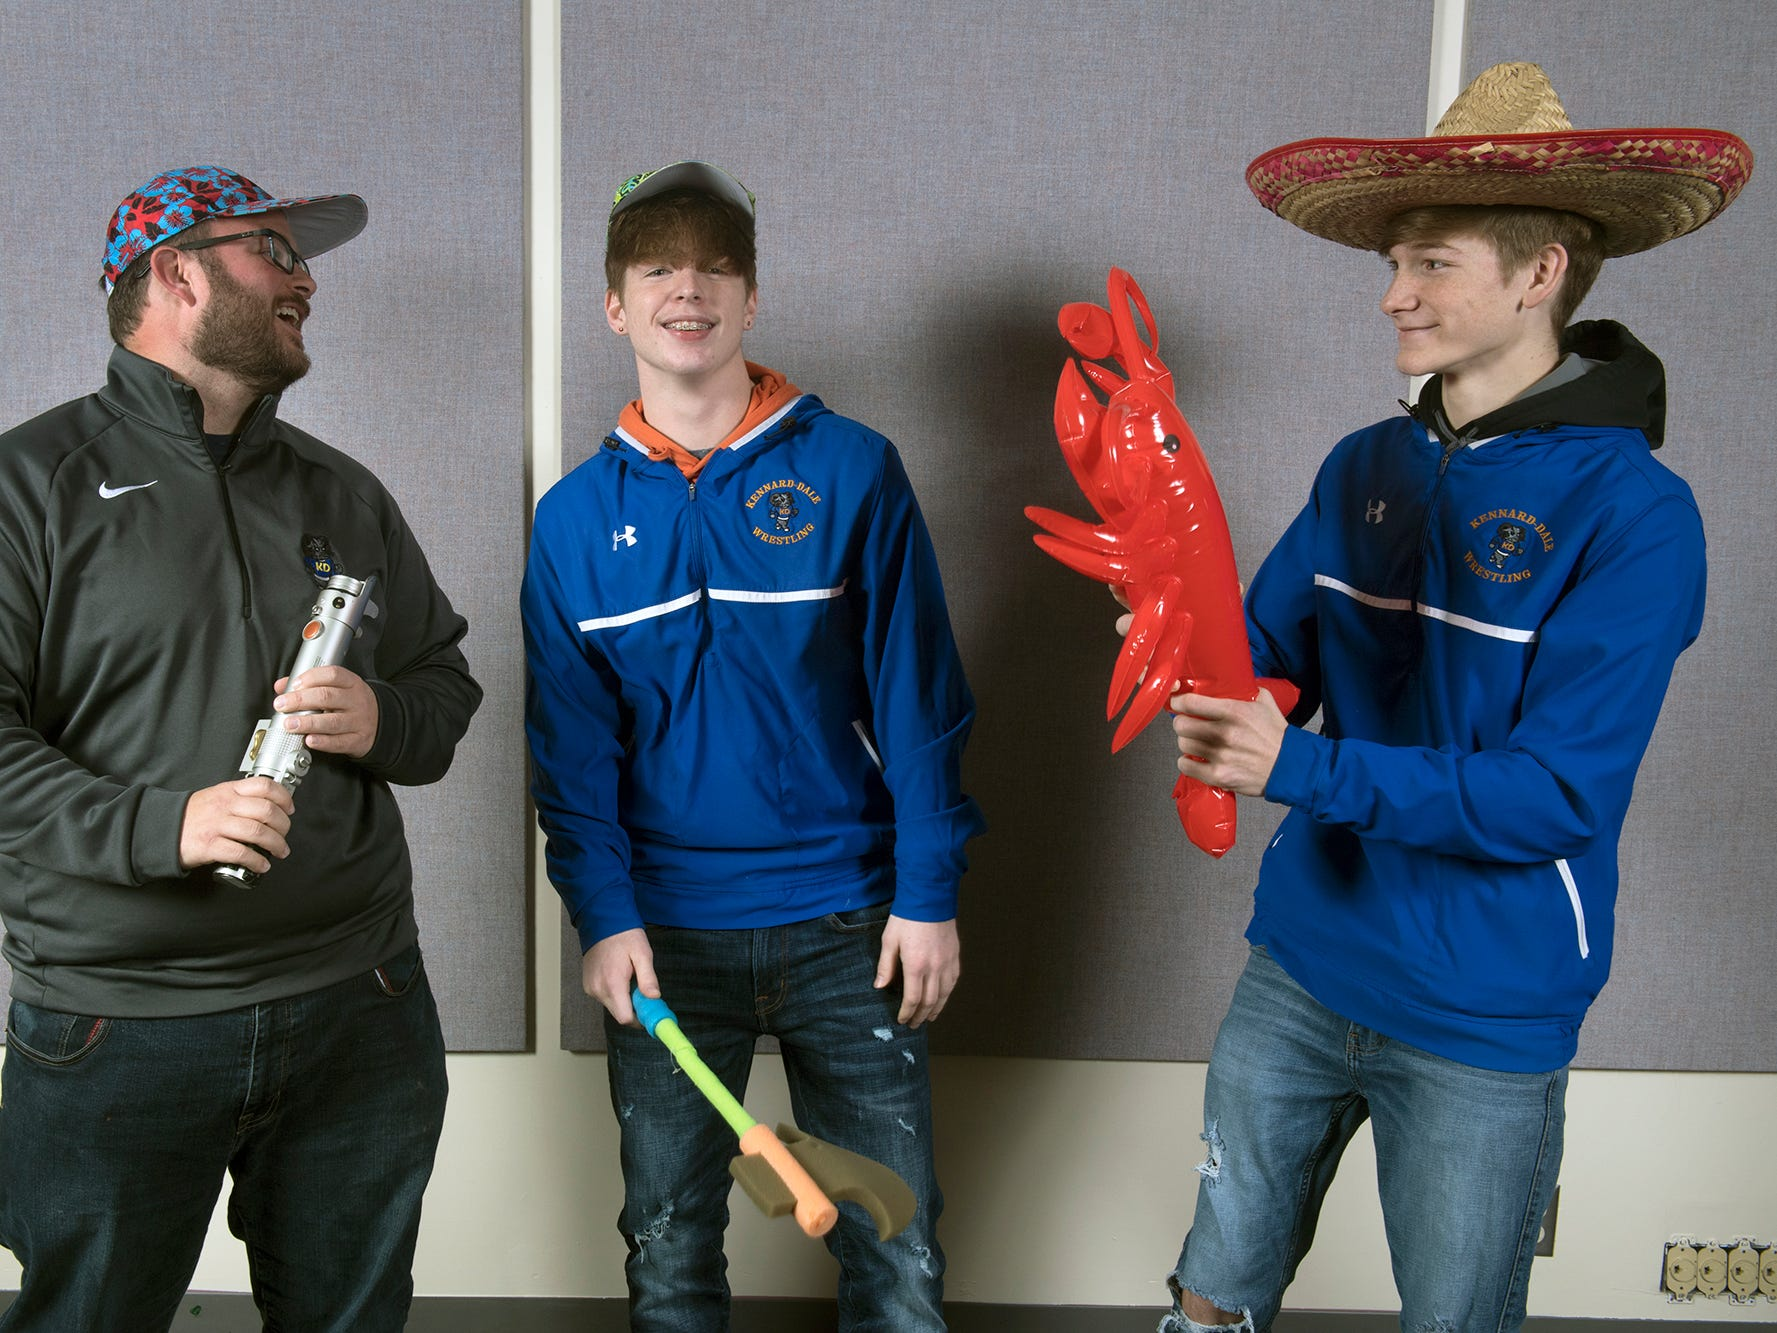 From the left, coach Jim Waltermyer, Nick Bradley and Daeman Davis, of the Kennard-Dale wrestling team, pose during the 2018-19 GameTimePa YAIAA Winter Media Day Sunday November 11, 2018.